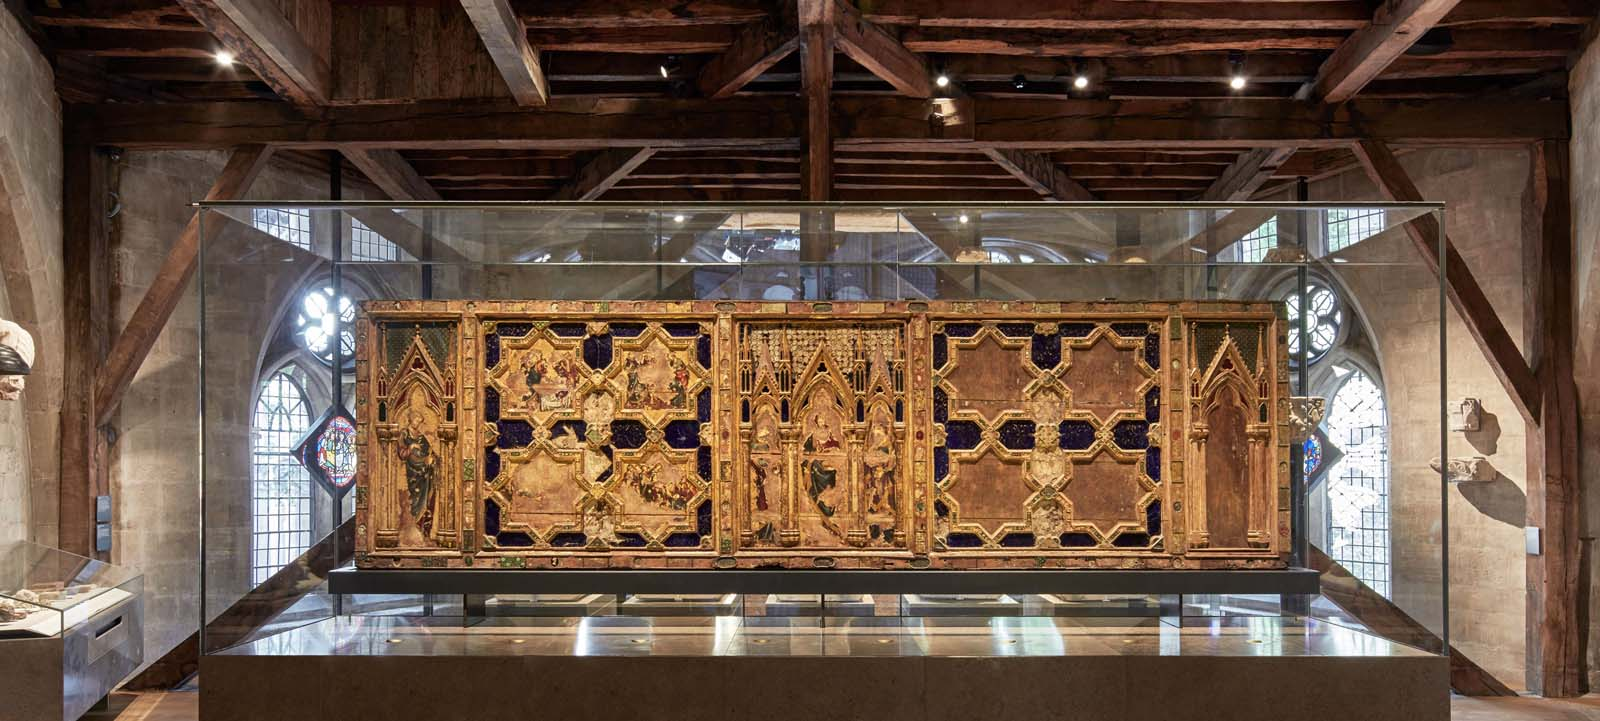 painted and gilded wood altarpiece with decorative metalwork, enamel, glass and other materials